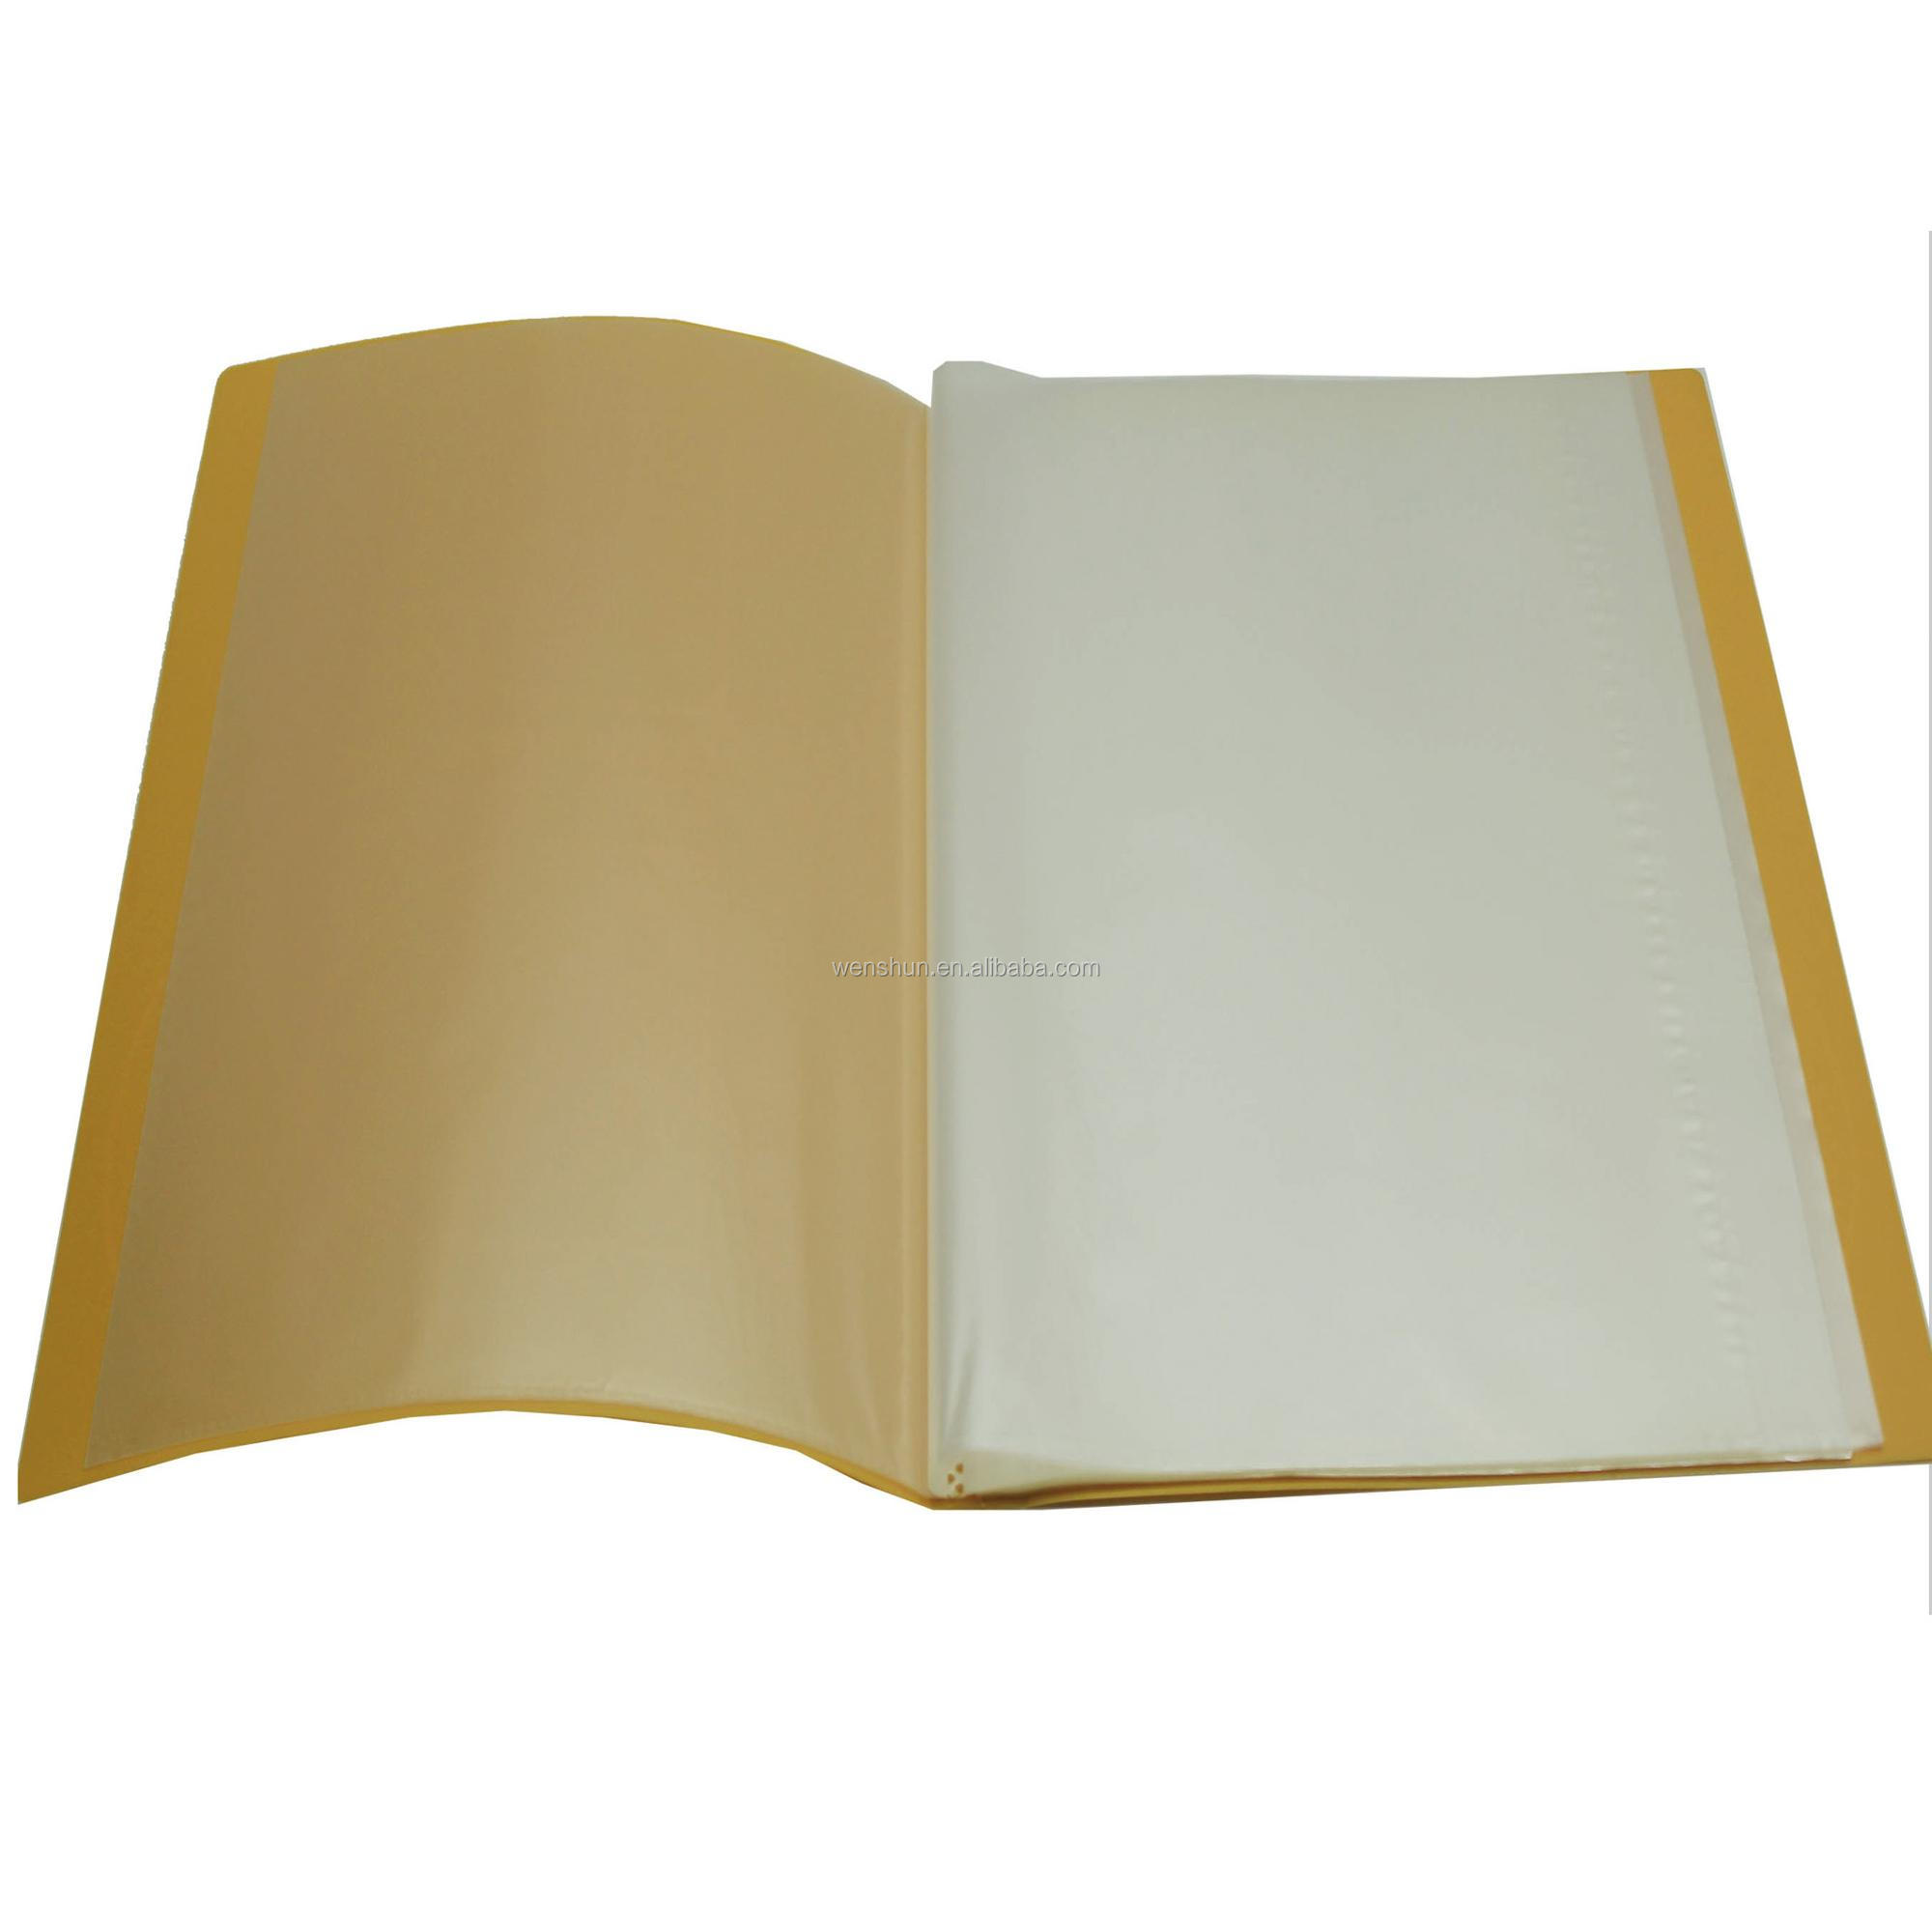 10/20/30/40/60/80 Page Clear Pocket Display Book Conference File Folder For Report